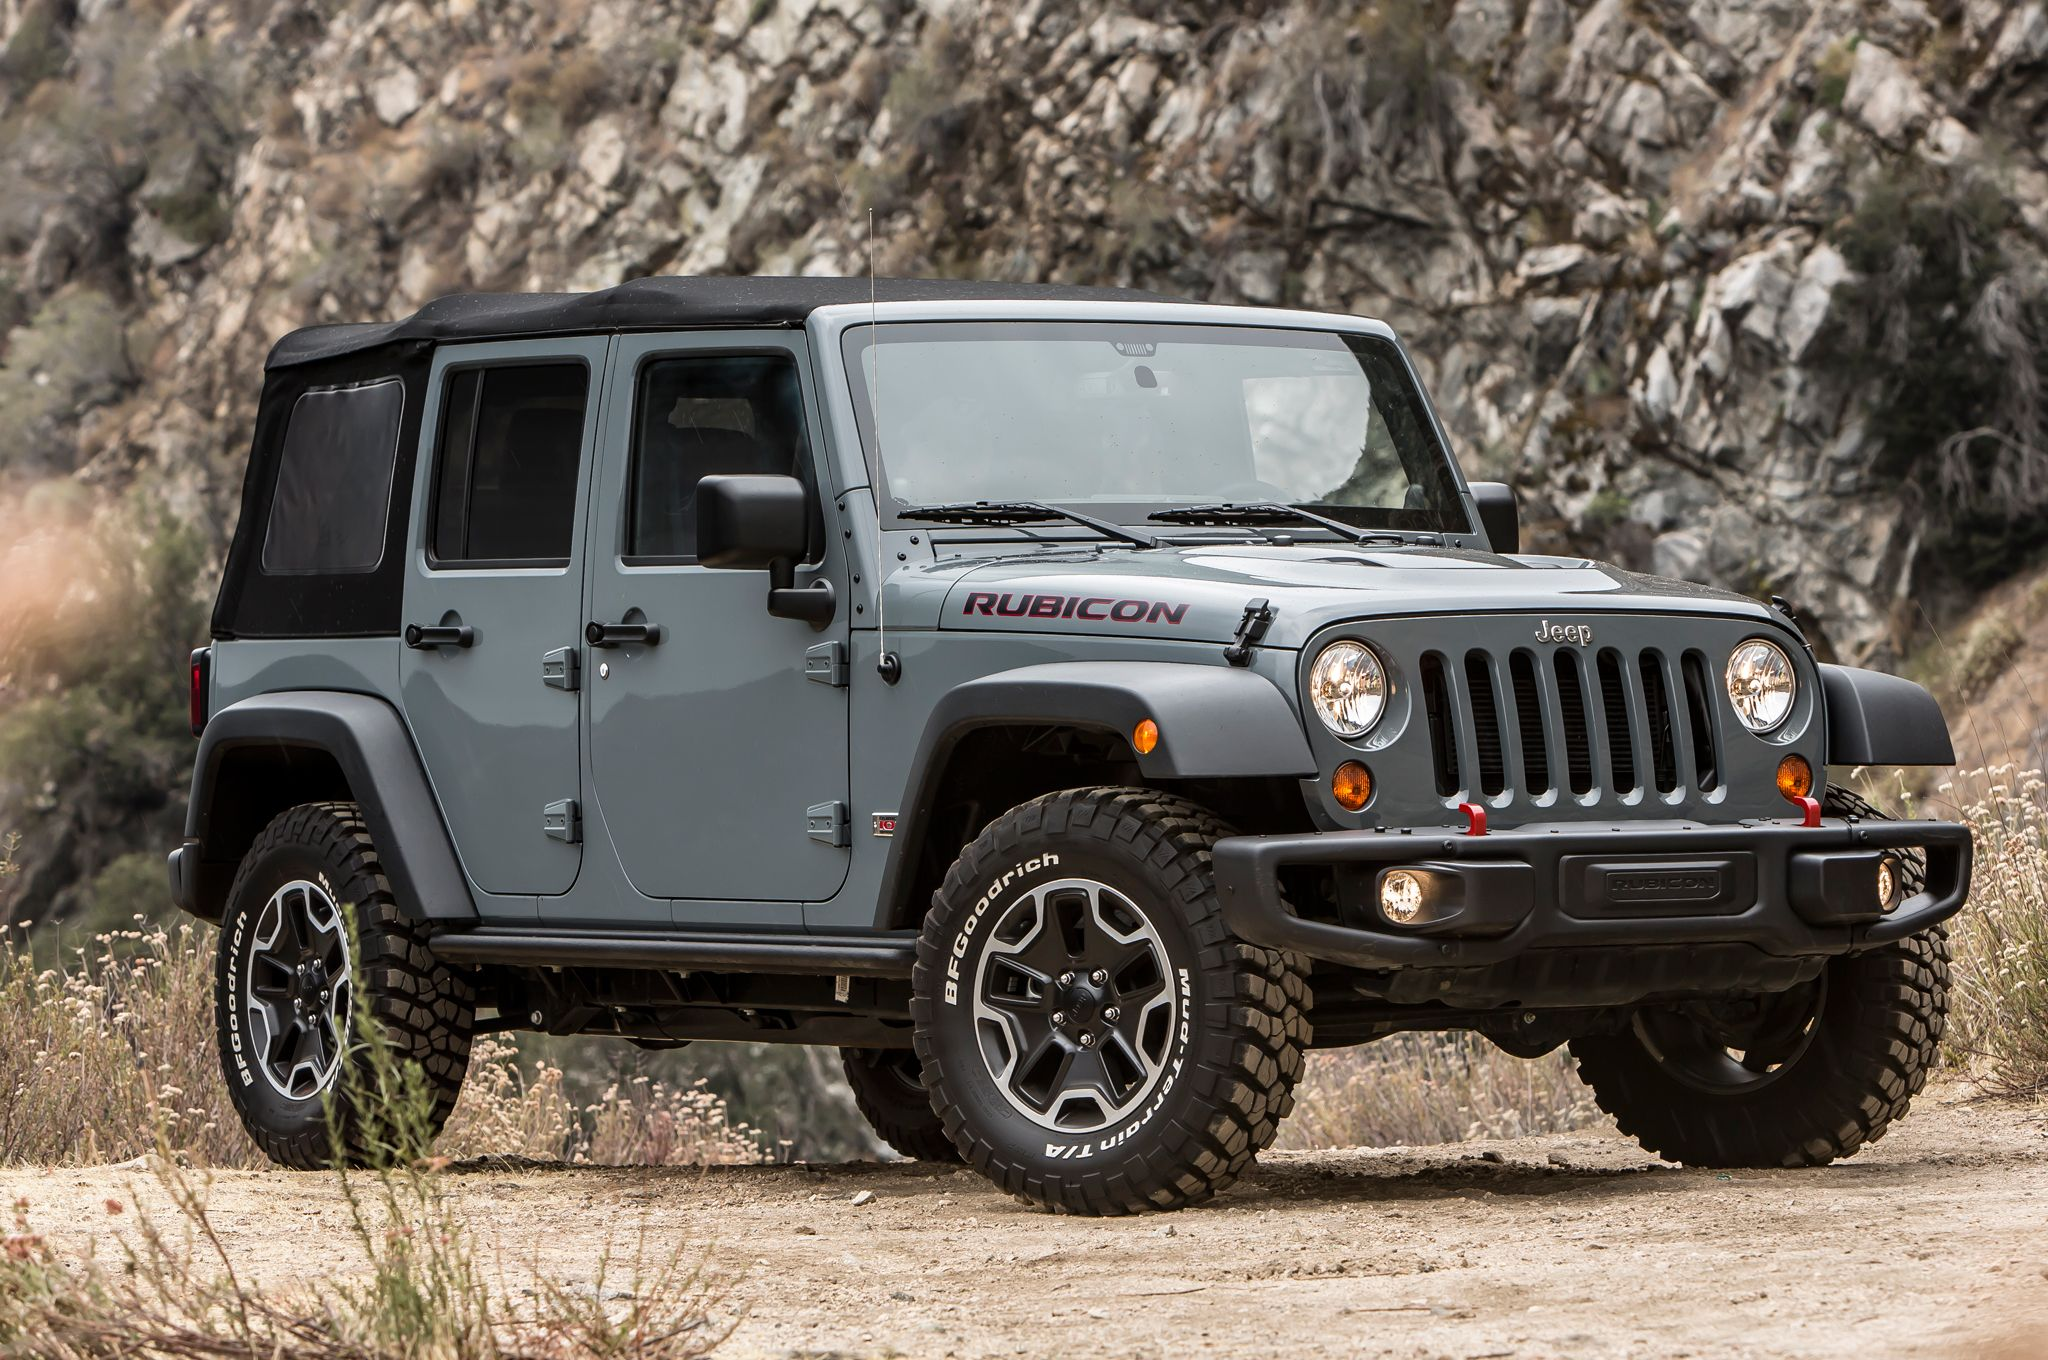 Les 25 meilleures id es de la cat gorie jeep examen rubicon en exclusivit sur pinterest jeep wrangler commentaires revues jeep wrangler unlimited et